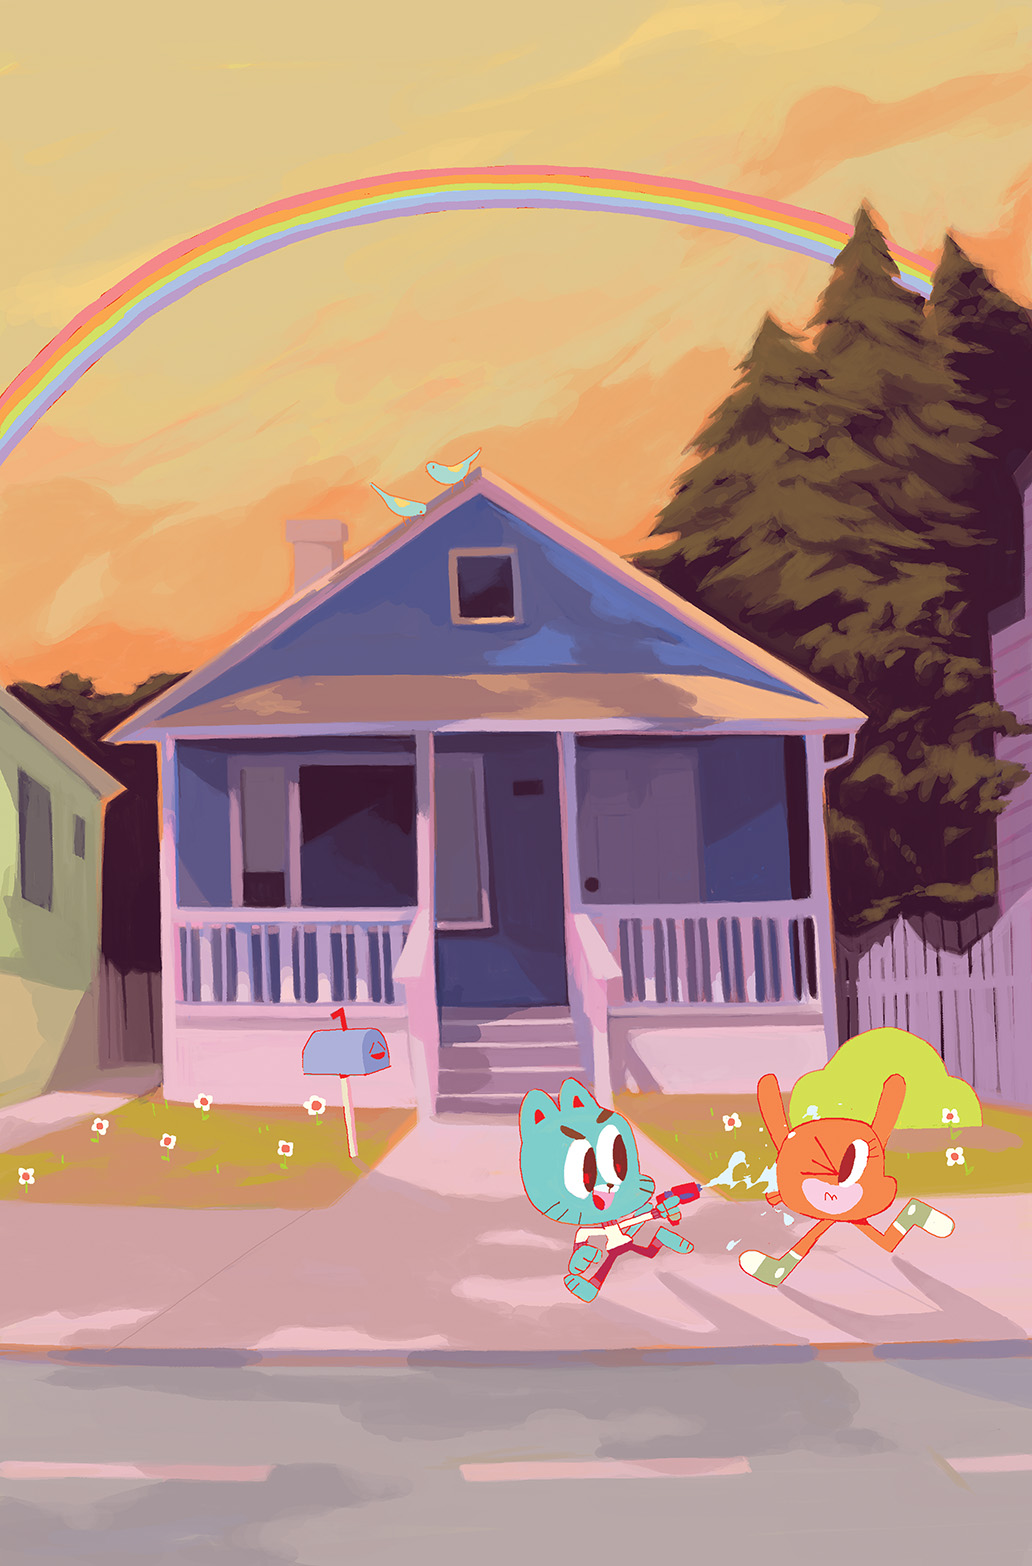 'The Amazing World Of Gumball' Joins KaBOOM! In June